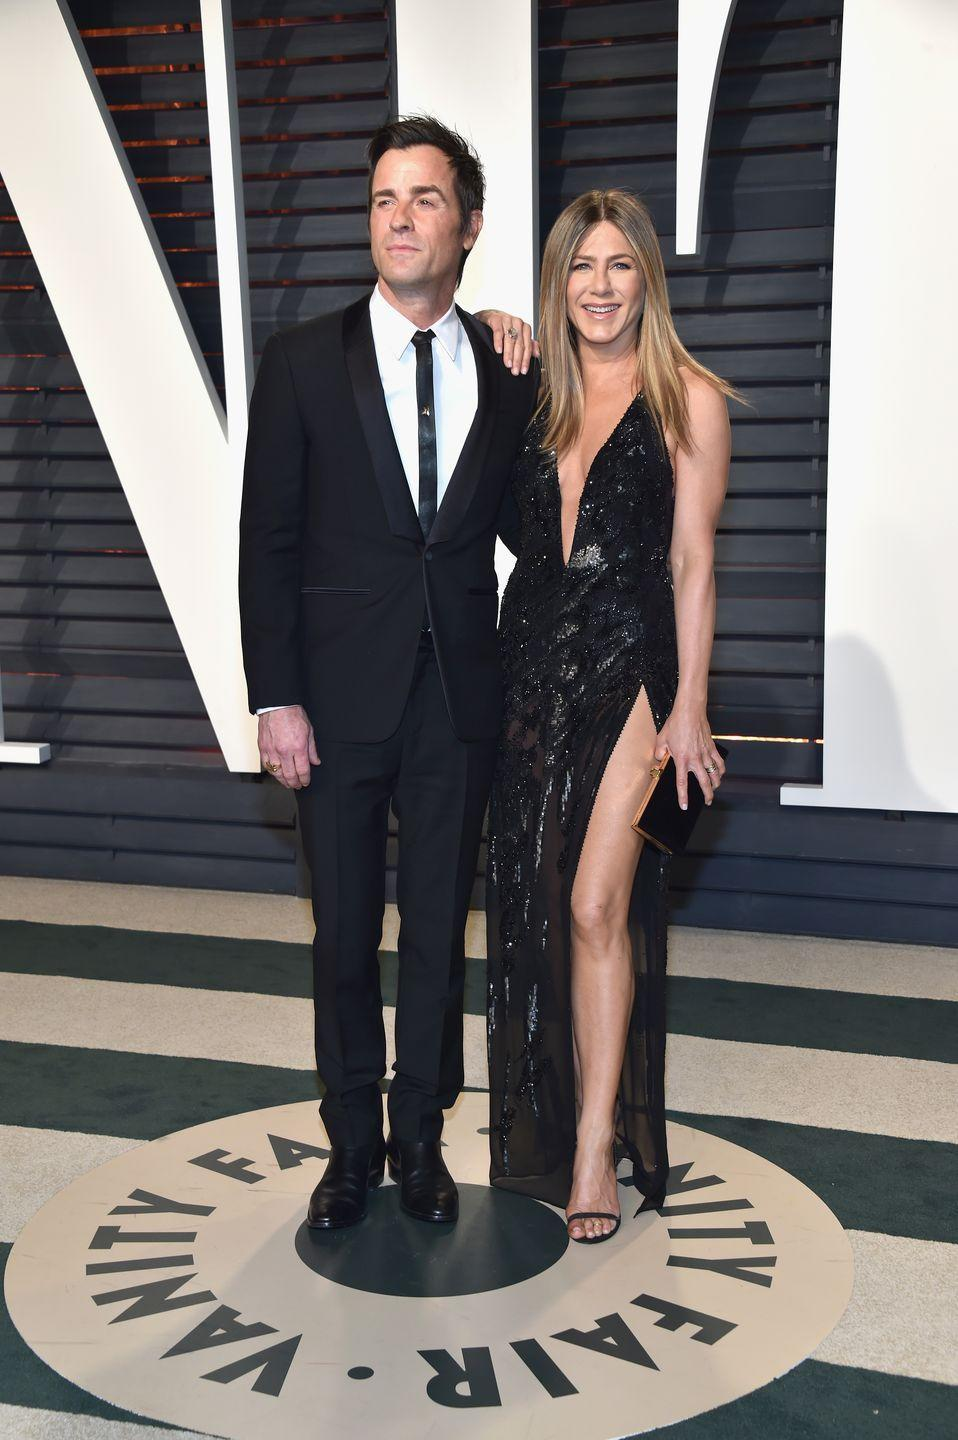 """<p>Jen looked absolutely phenomenal with now ex-husband Justin Theroux at the 2017 Vanity Fair Oscar Party. Her body seriously has not aged, and that might be due to her <a href=""""https://www.womenshealthmag.com/fitness/a26280079/jennifer-aniston-birthday-workout/"""" rel=""""nofollow noopener"""" target=""""_blank"""" data-ylk=""""slk:hardcore workouts"""" class=""""link rapid-noclick-resp"""">hardcore workouts</a>.<br></p>"""